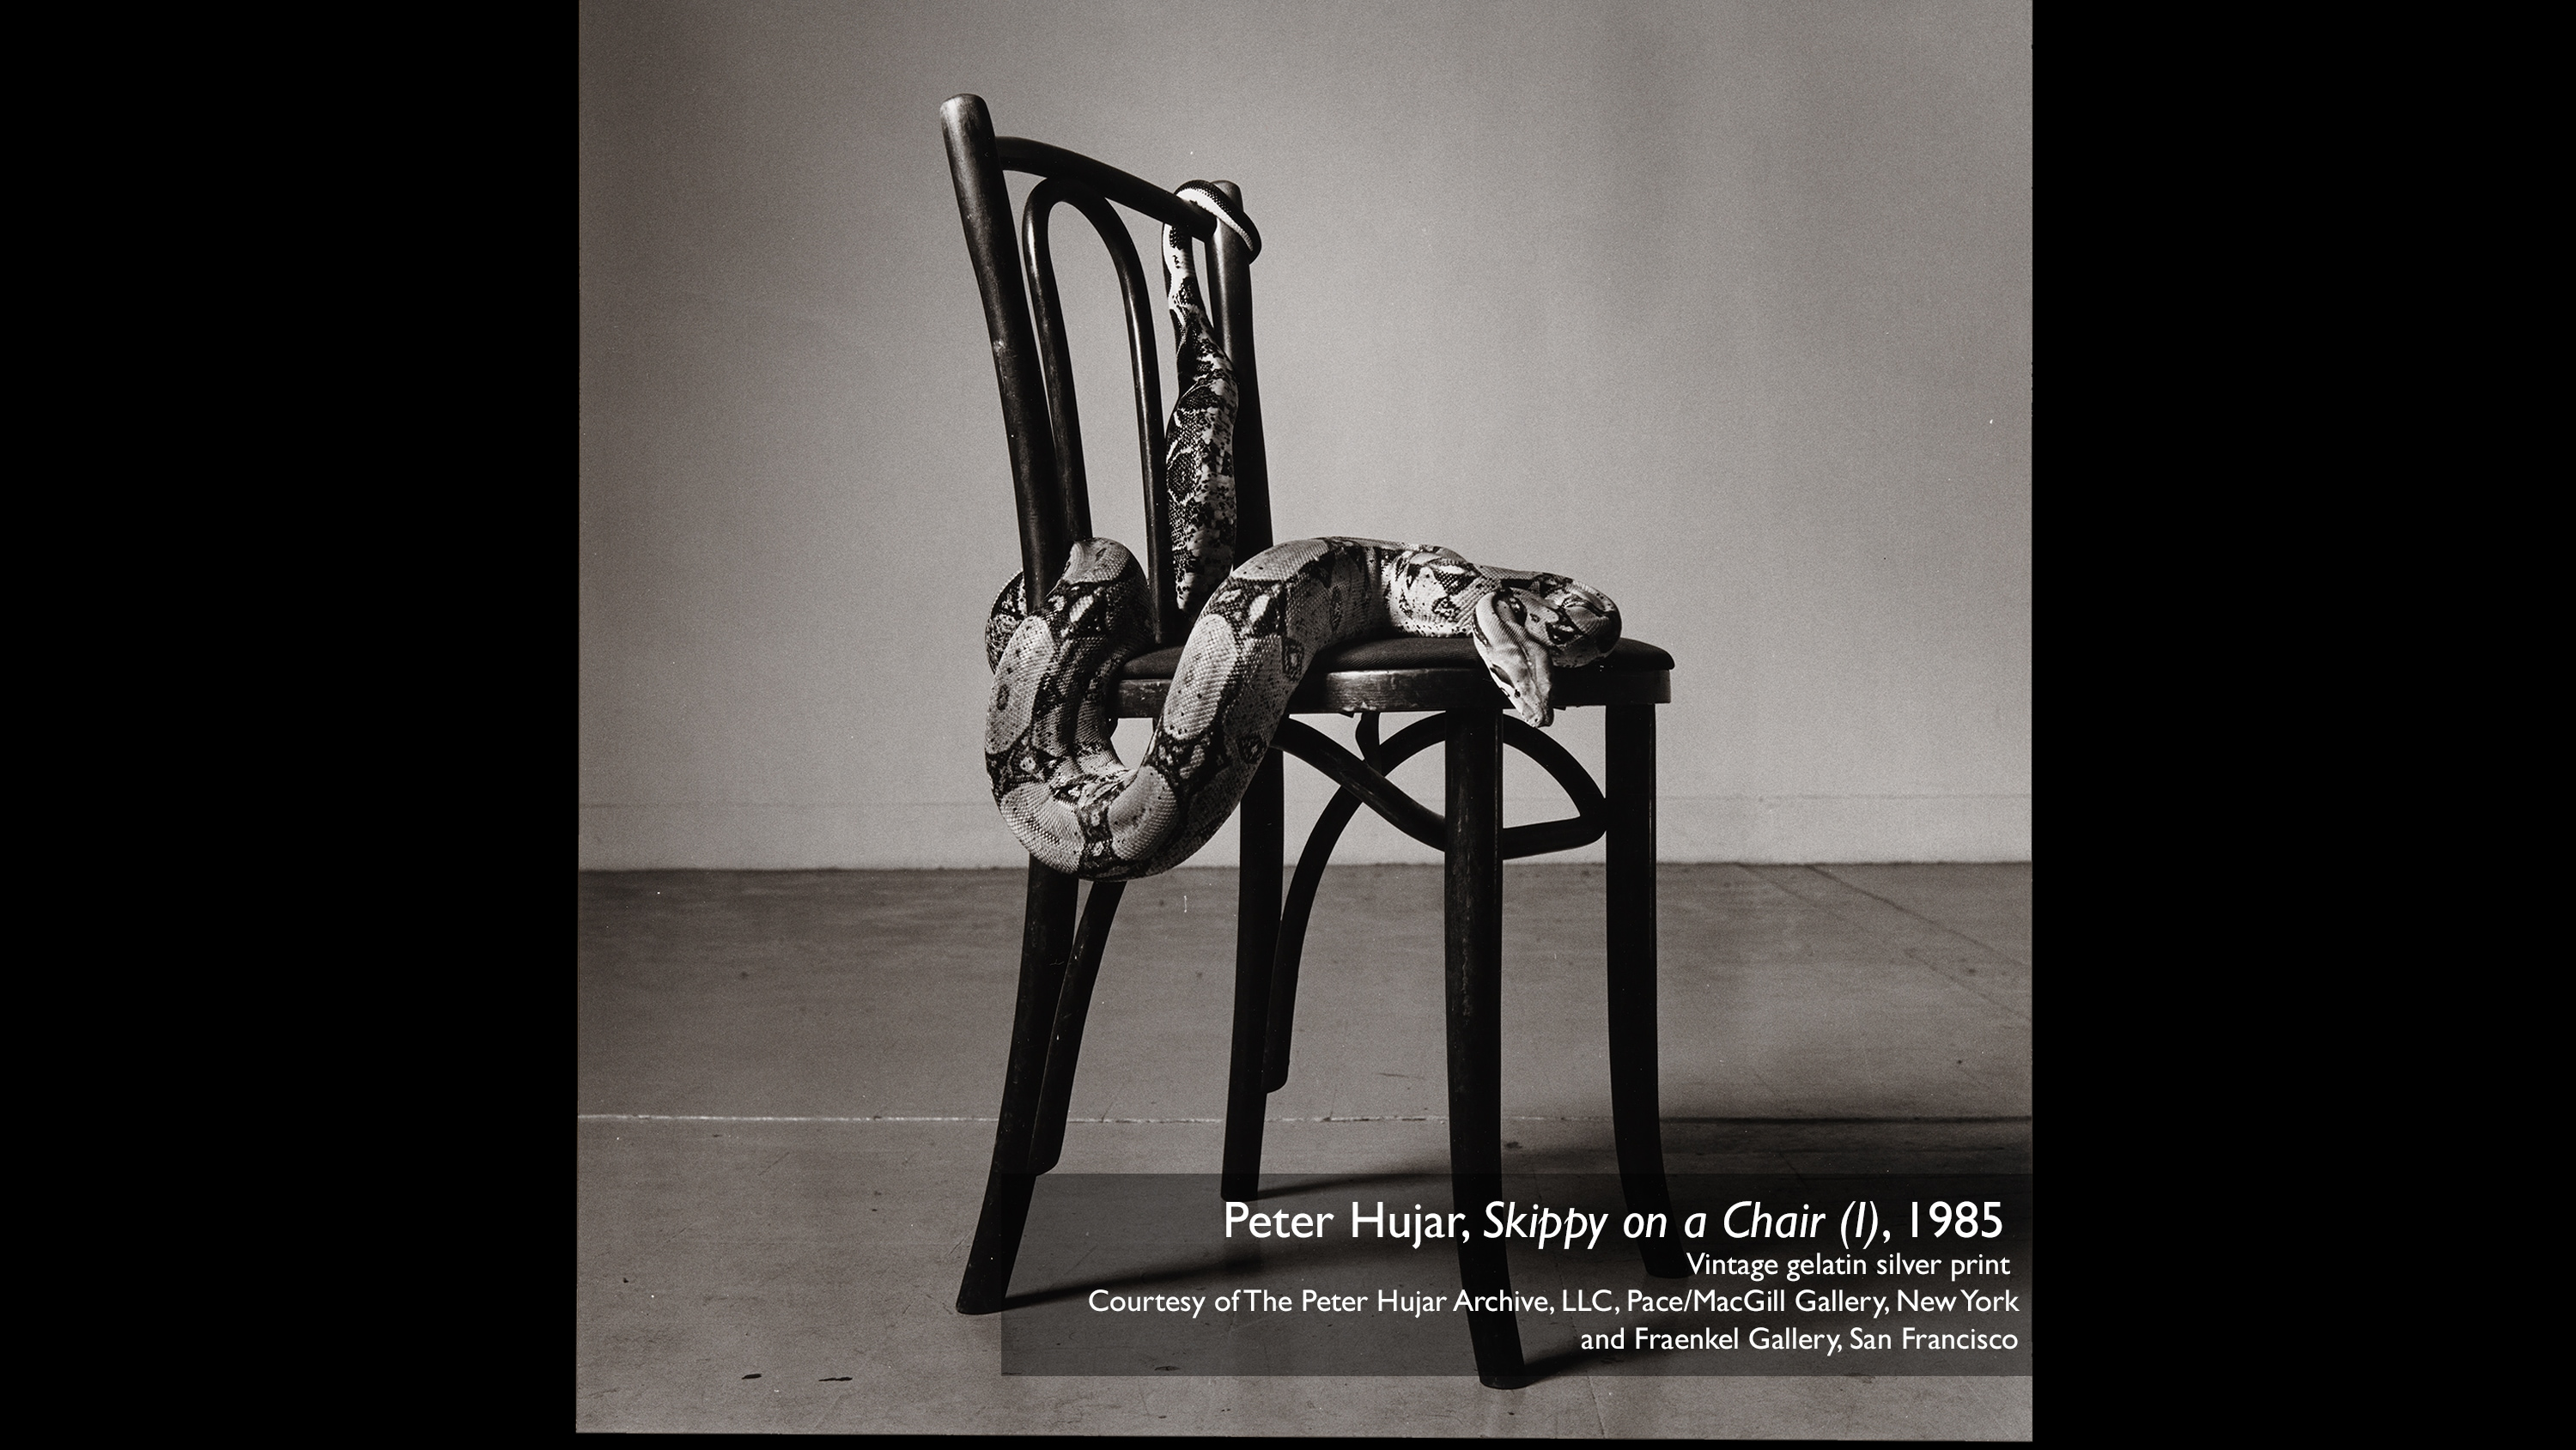 Peter Hujar, Skippy on a Chair (I), 1985  vintage gelatin silver print  Courtesy of The Peter Hujar Archive, LLC, Pace/MacGill Gallery, New York and Fraenkel Gallery, San Francisco